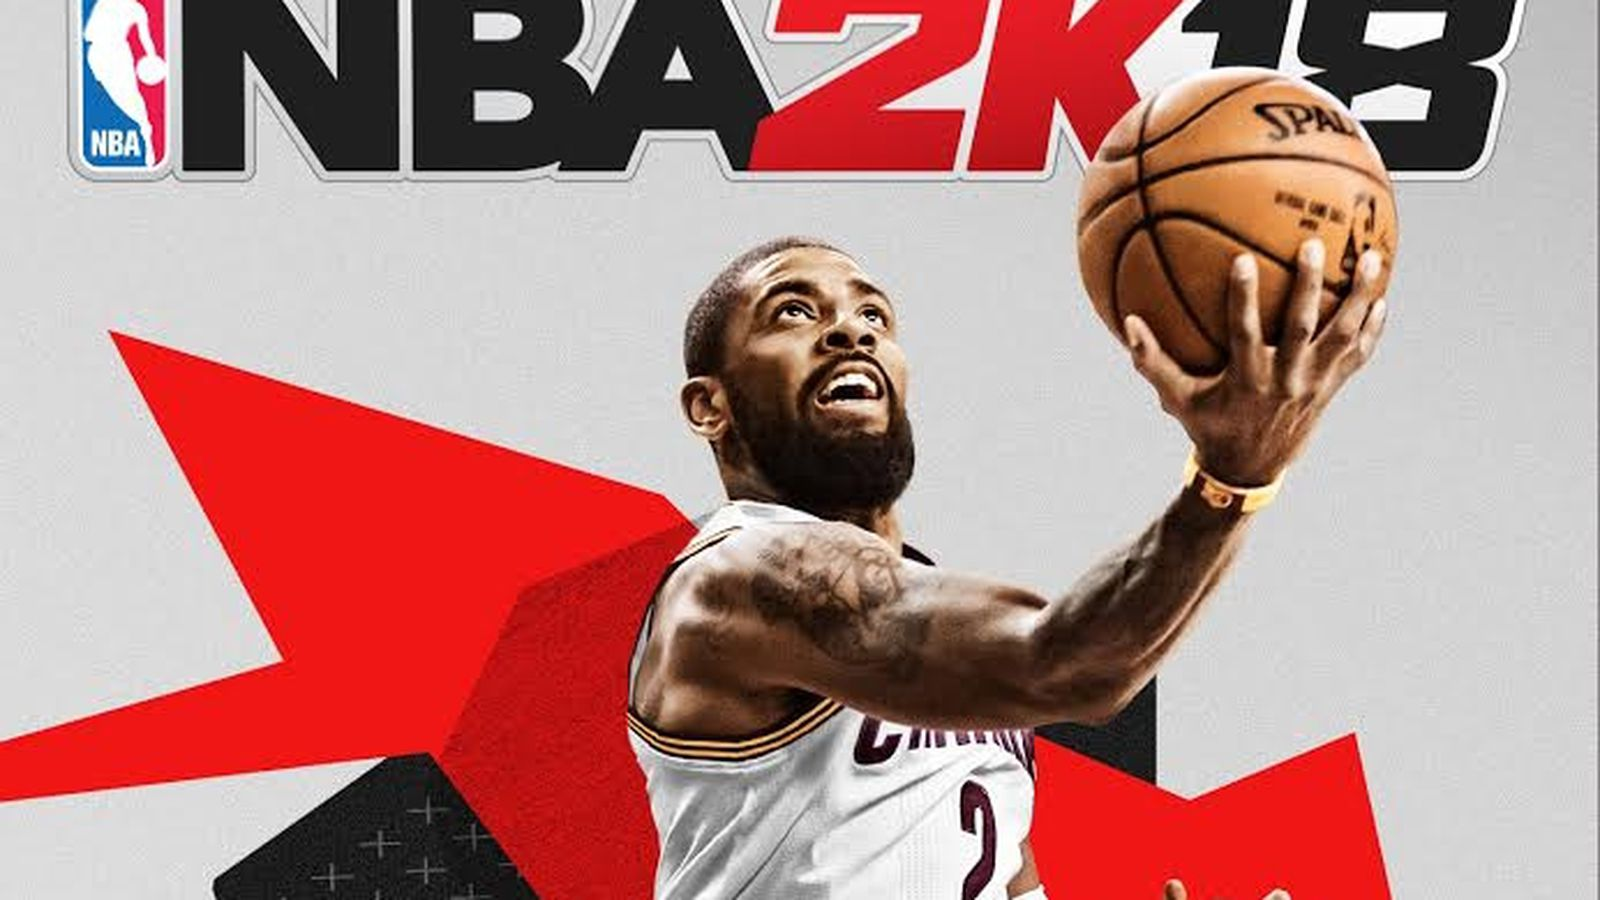 NBA 2K18 will get a second cover following Kyrie Irving's trade (update)